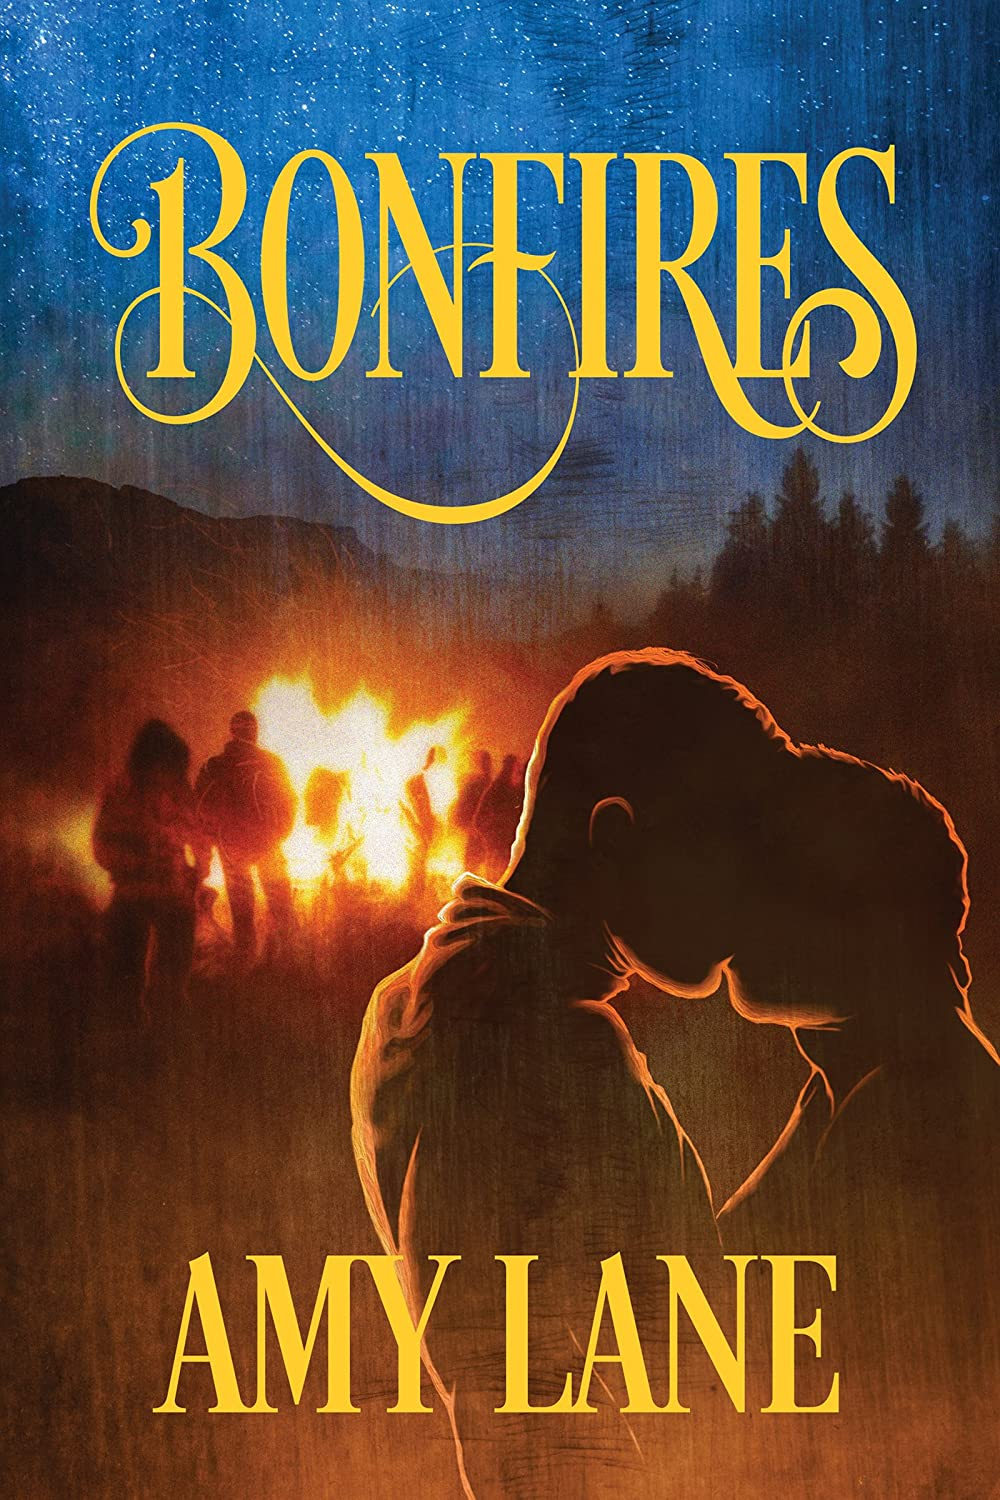 Bonfires (English Edition) eBook: Lane, Amy: Amazon.es: Tienda Kindle